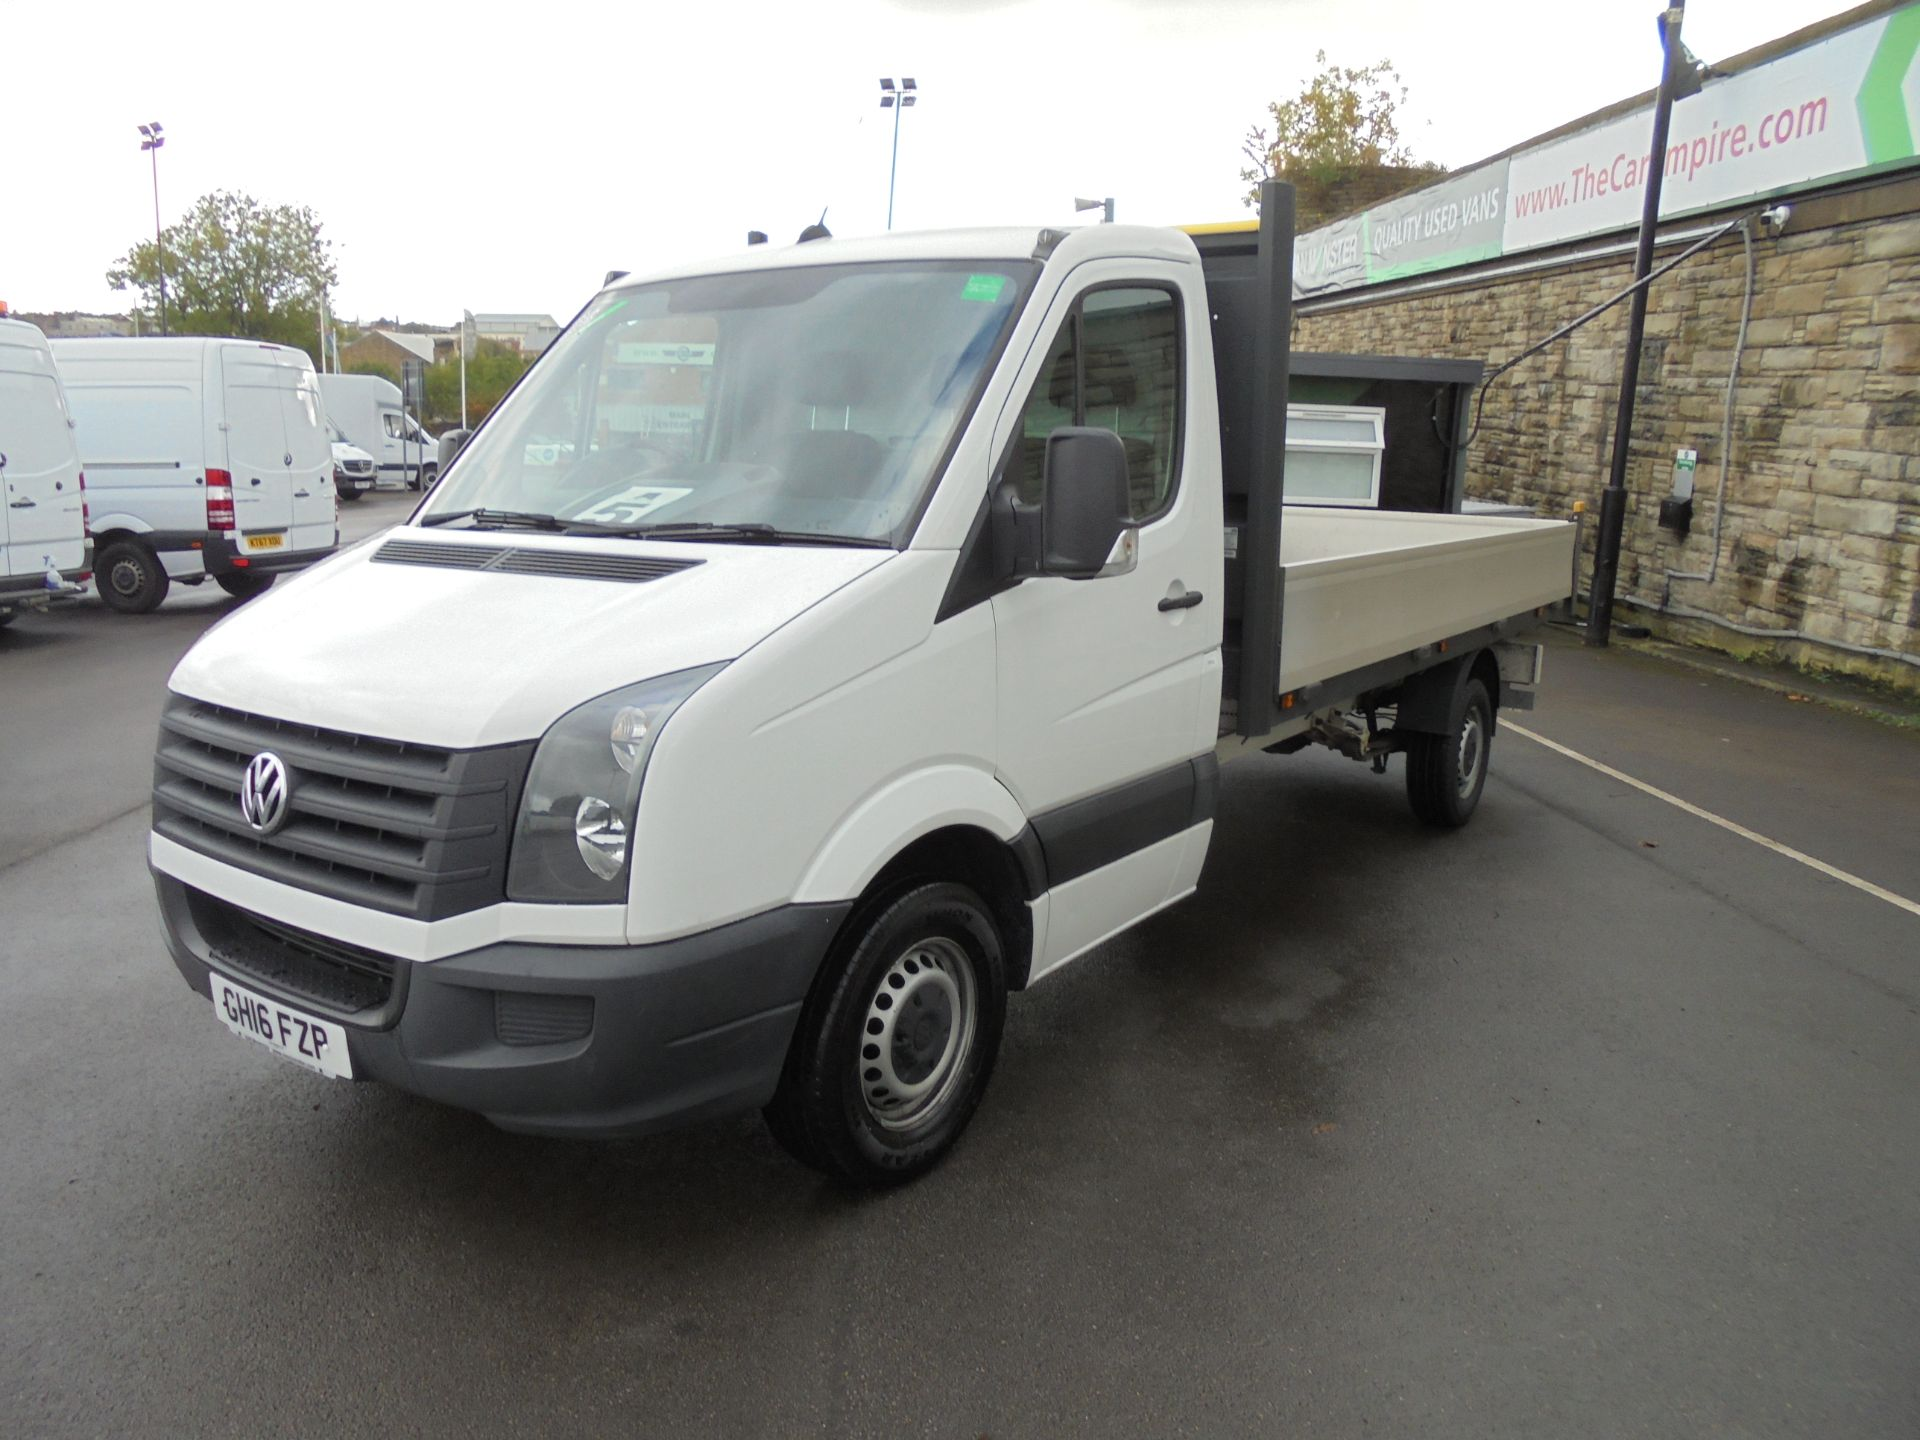 2016 Volkswagen Crafter 2.0 Tdi 136Ps Dropside (GH16FZP) Image 3